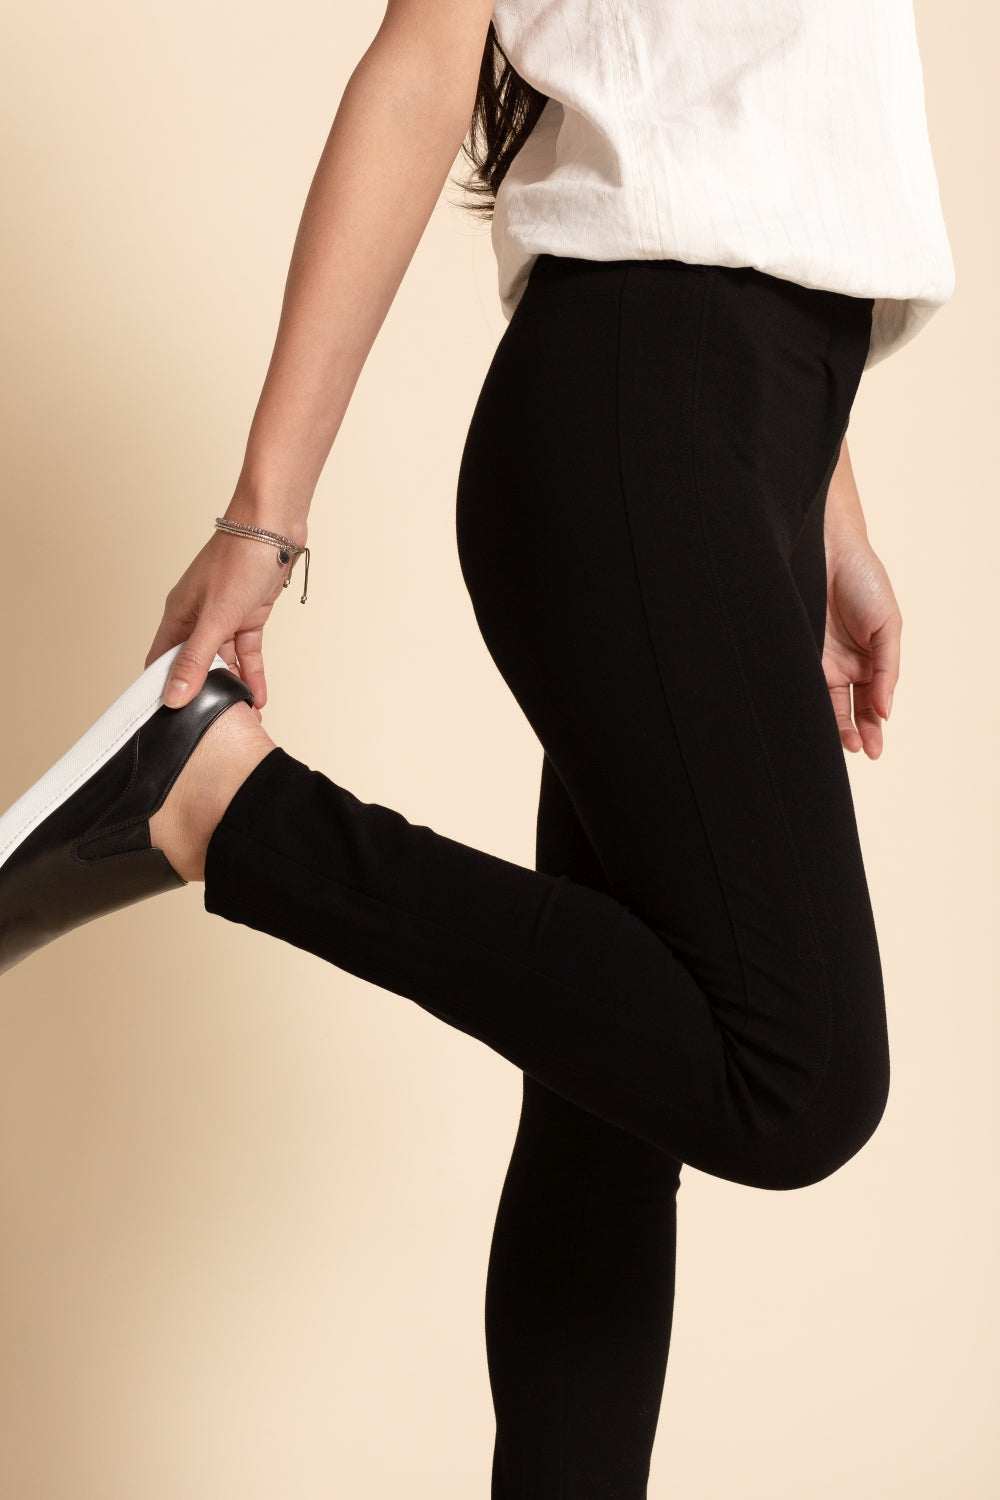 Hybrid Legging v2 - Black